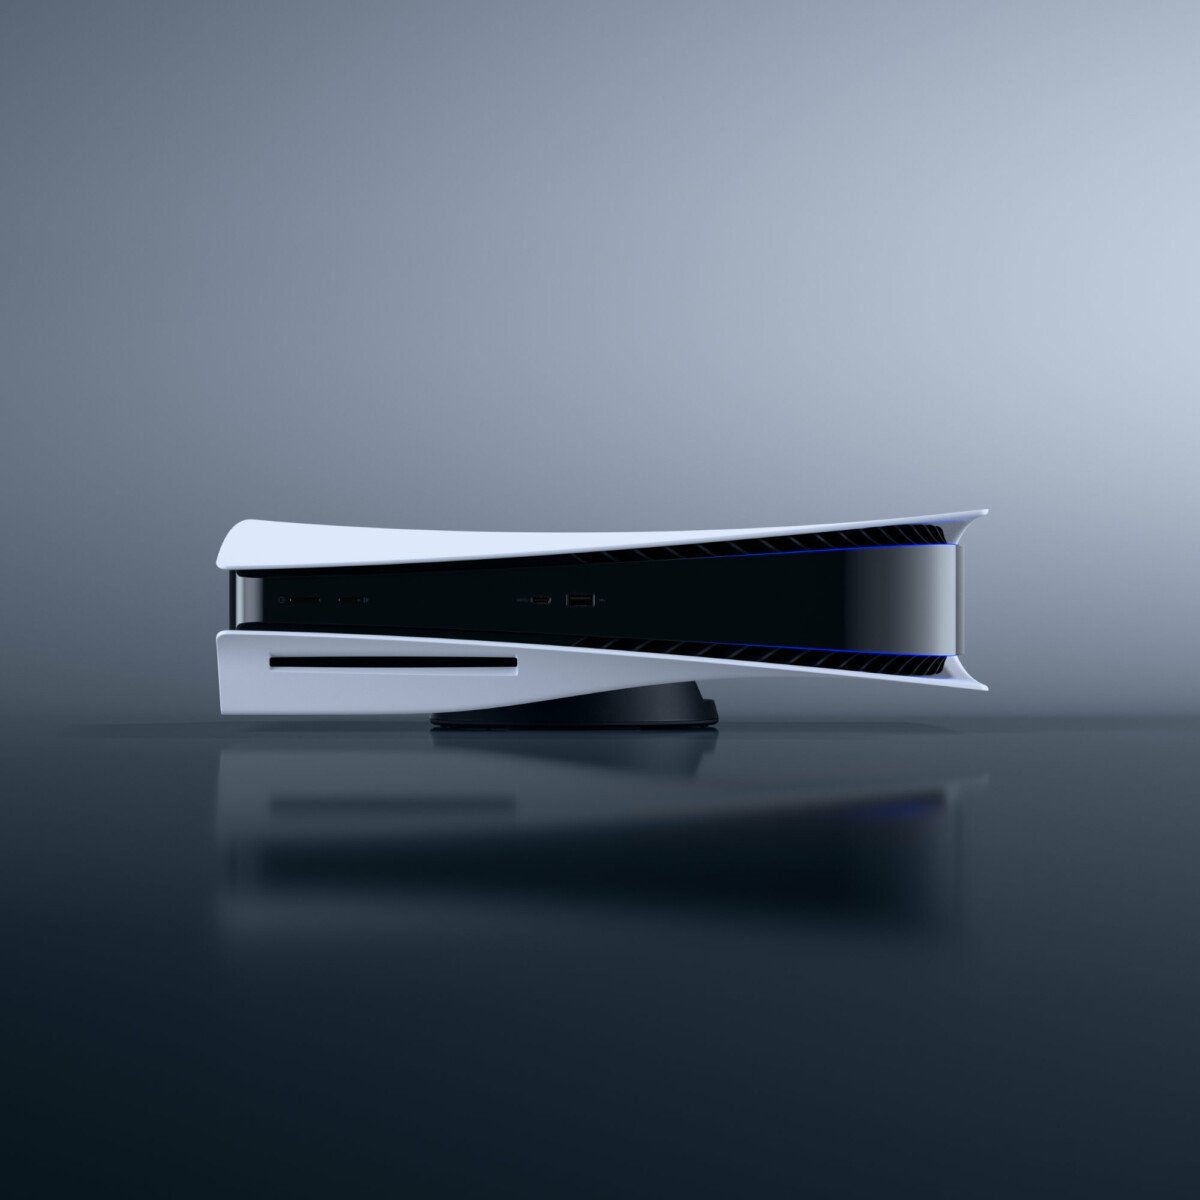 PlayStation 5 game console in horizontal position